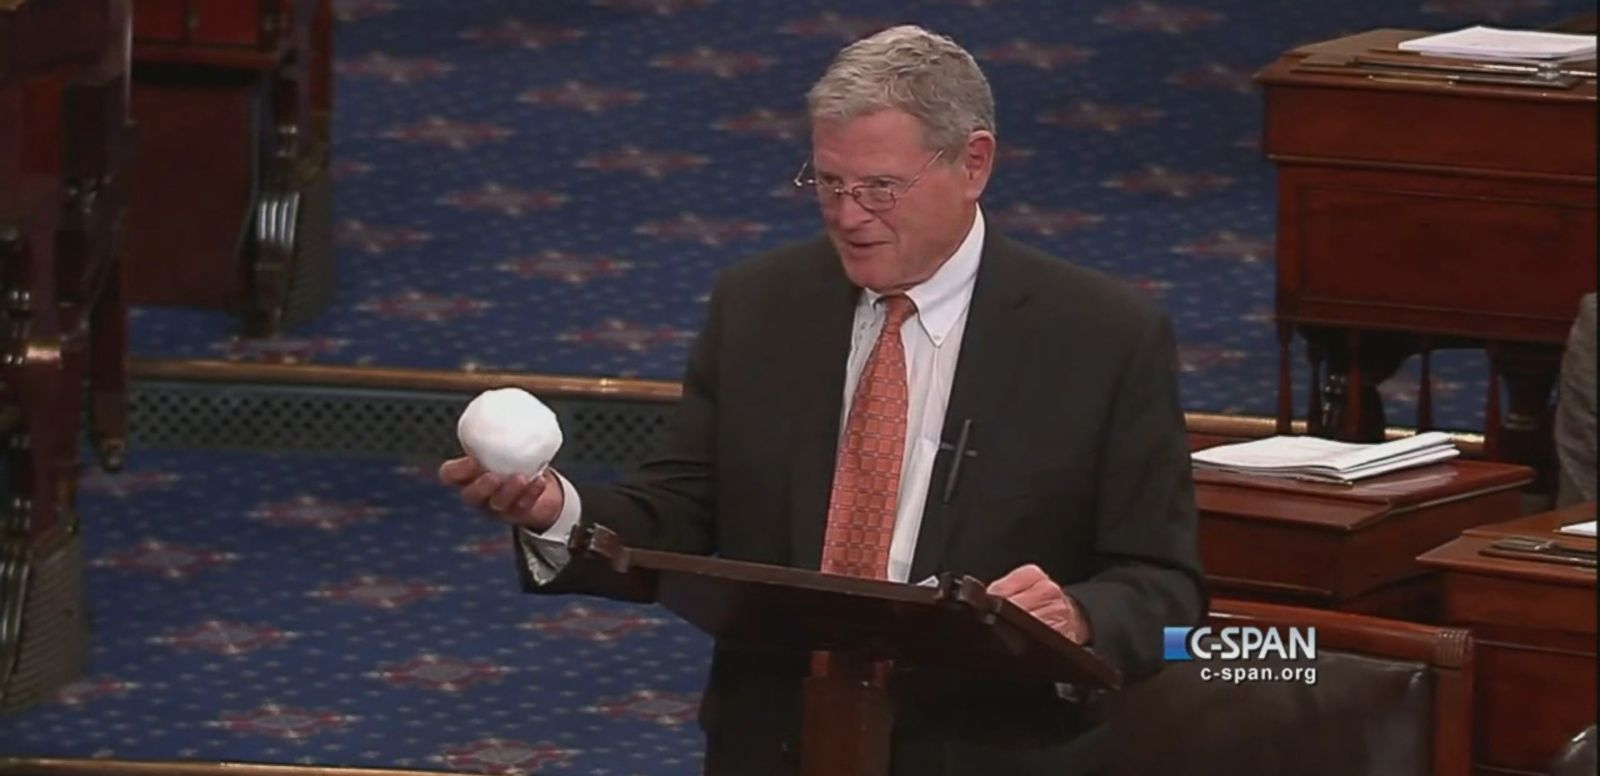 VIDEO: Climate change denier Sen. Jim Inhofe (R-OK) threw a snowball at someone on the Senate floor to try and debunk climate change.